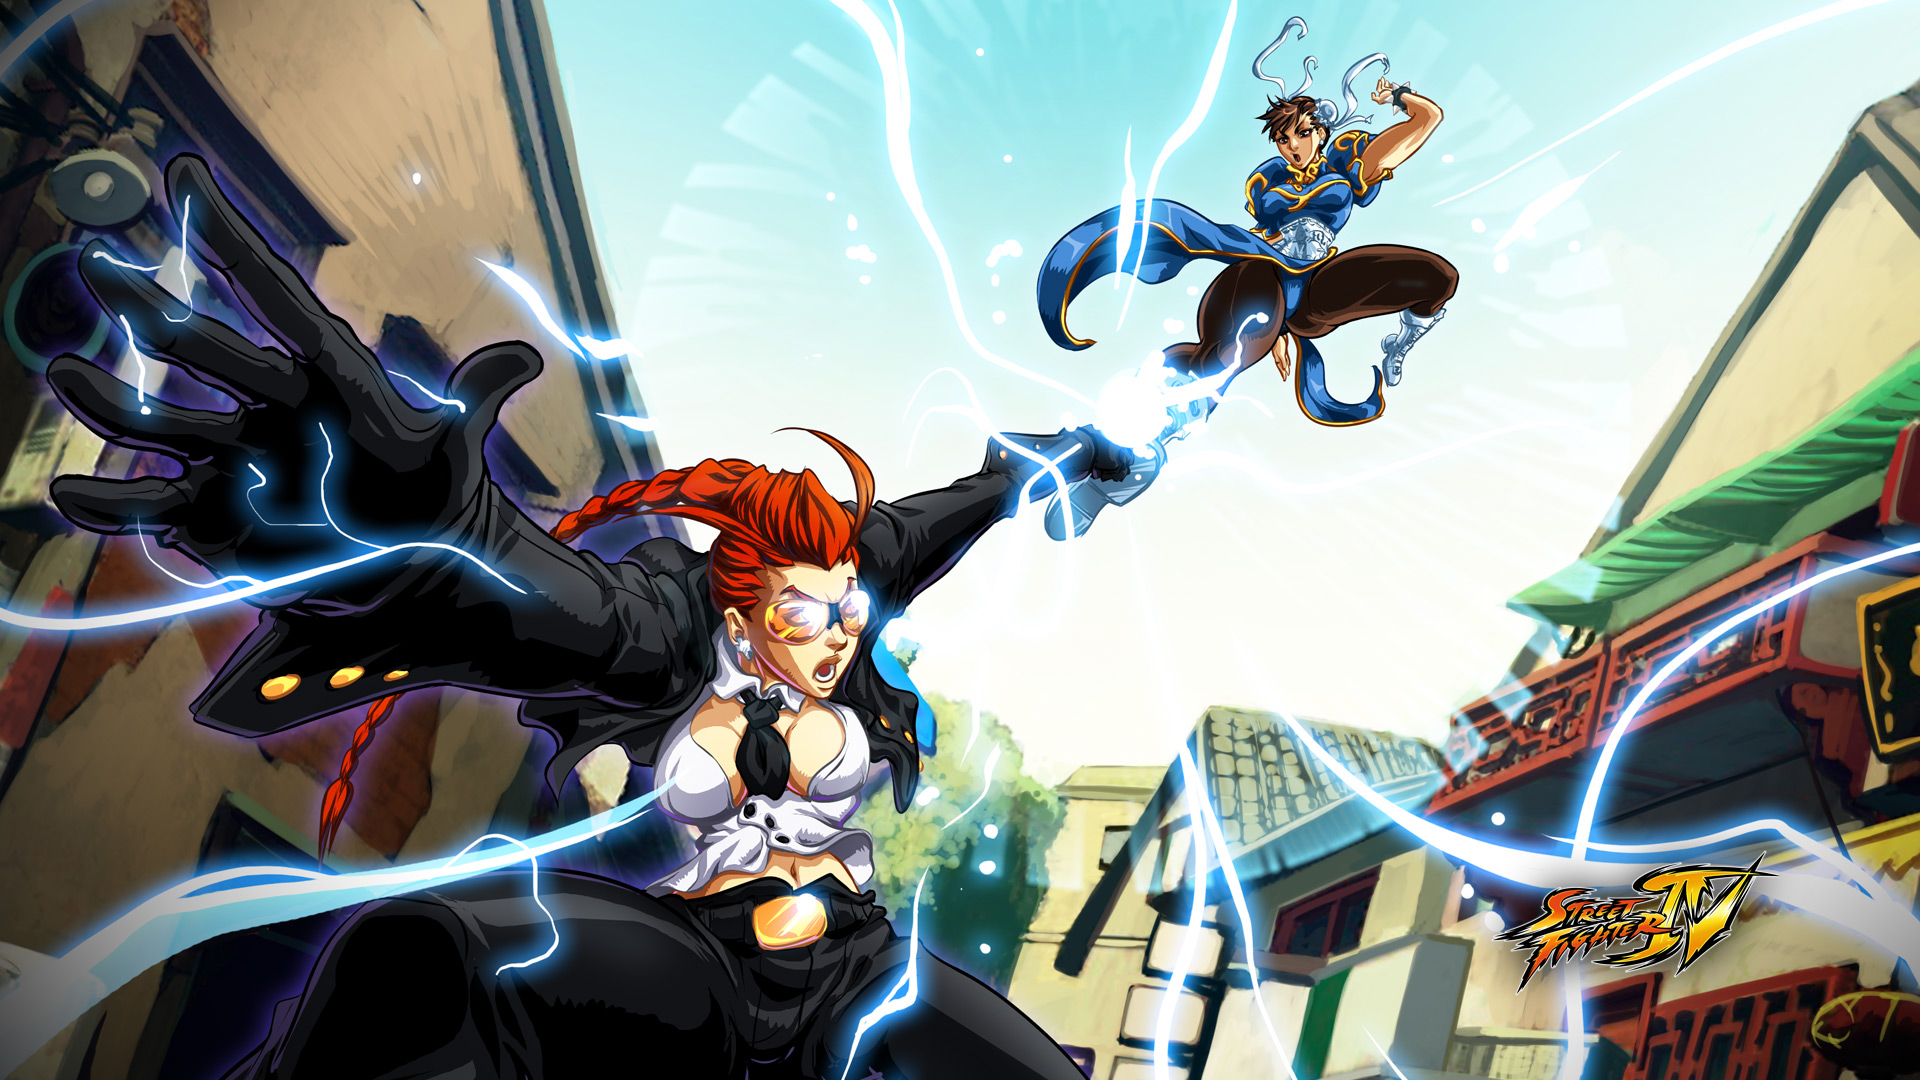 Hd wallpapers street fighter 4